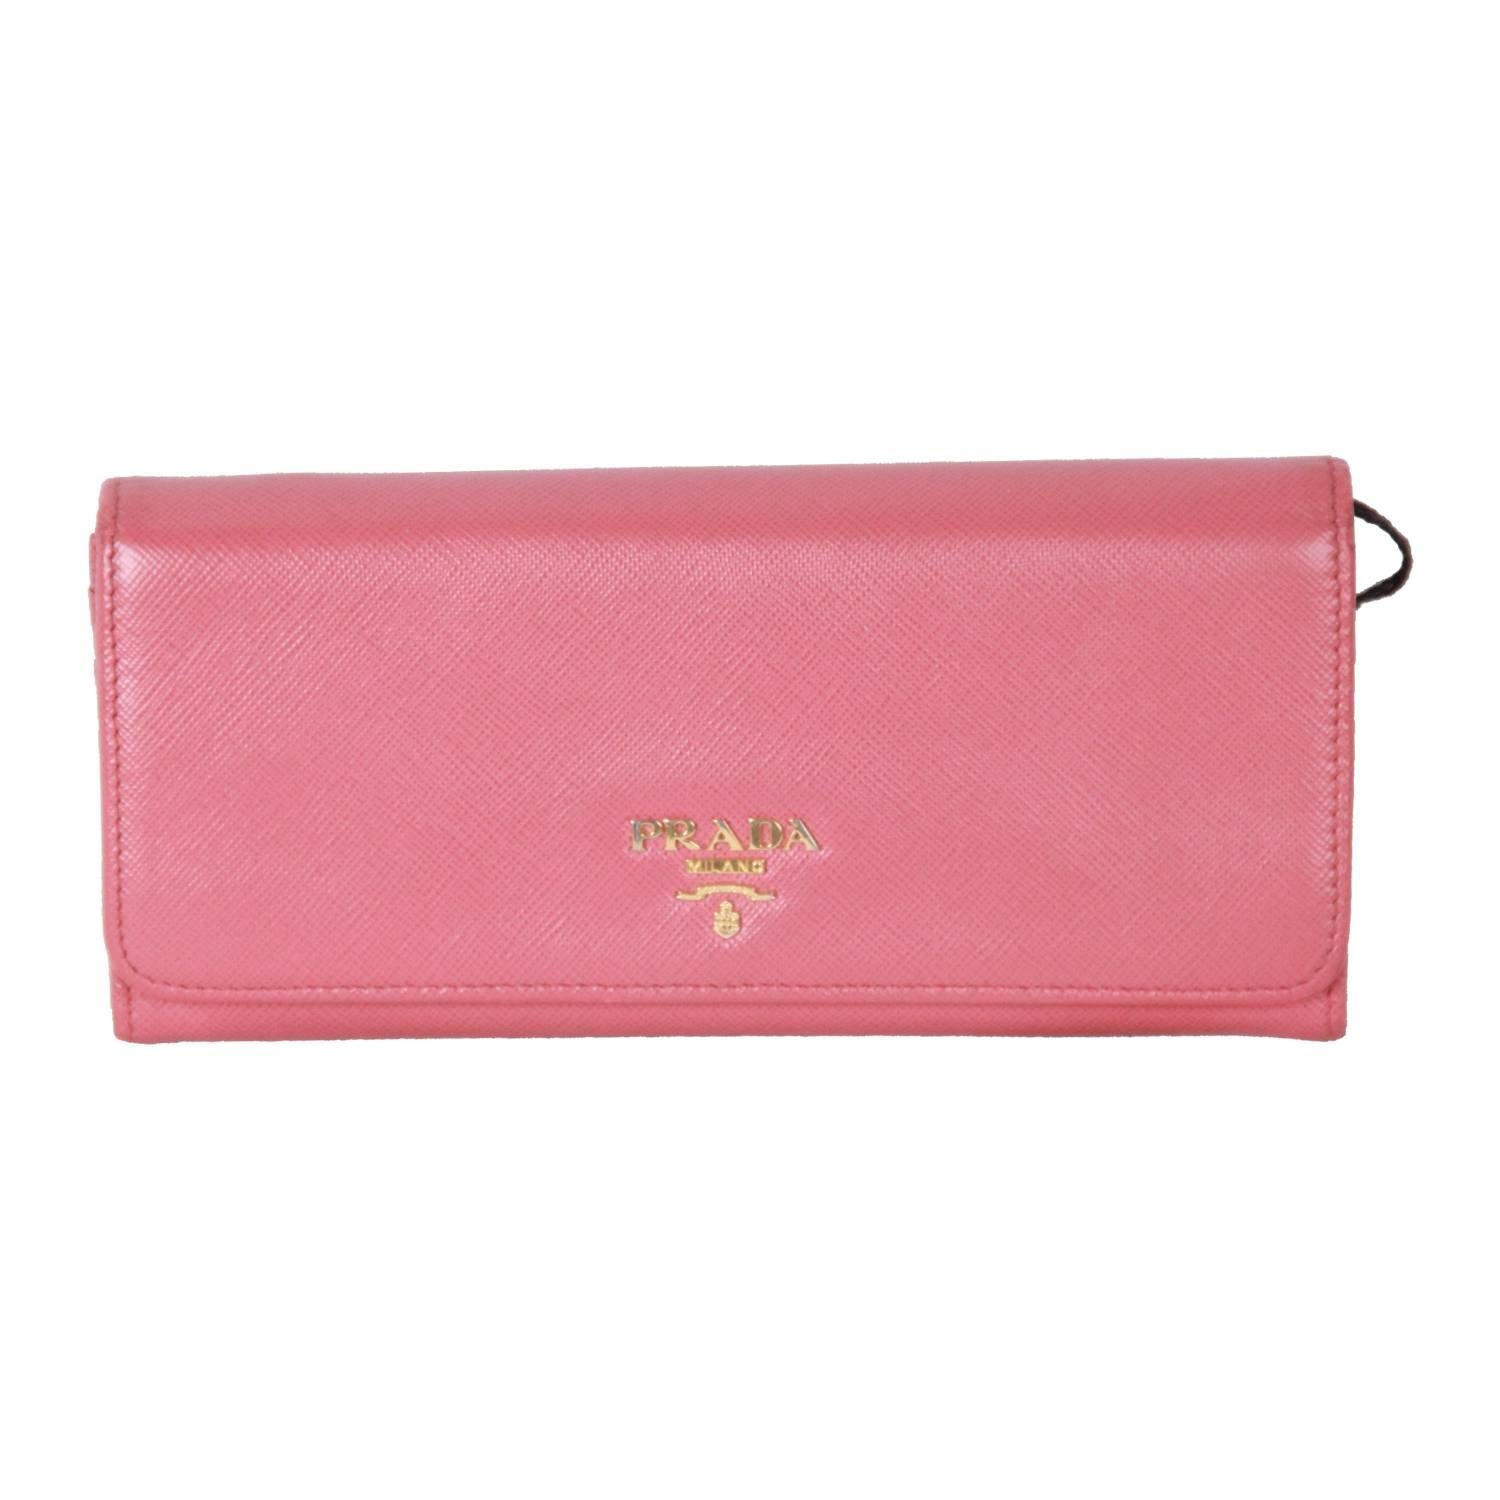 ba1438fa83ea PRADA Pink SAFFIANO Leather FLAP CONTINENTAL WALLET 1M1132 For Sale at  1stdibs